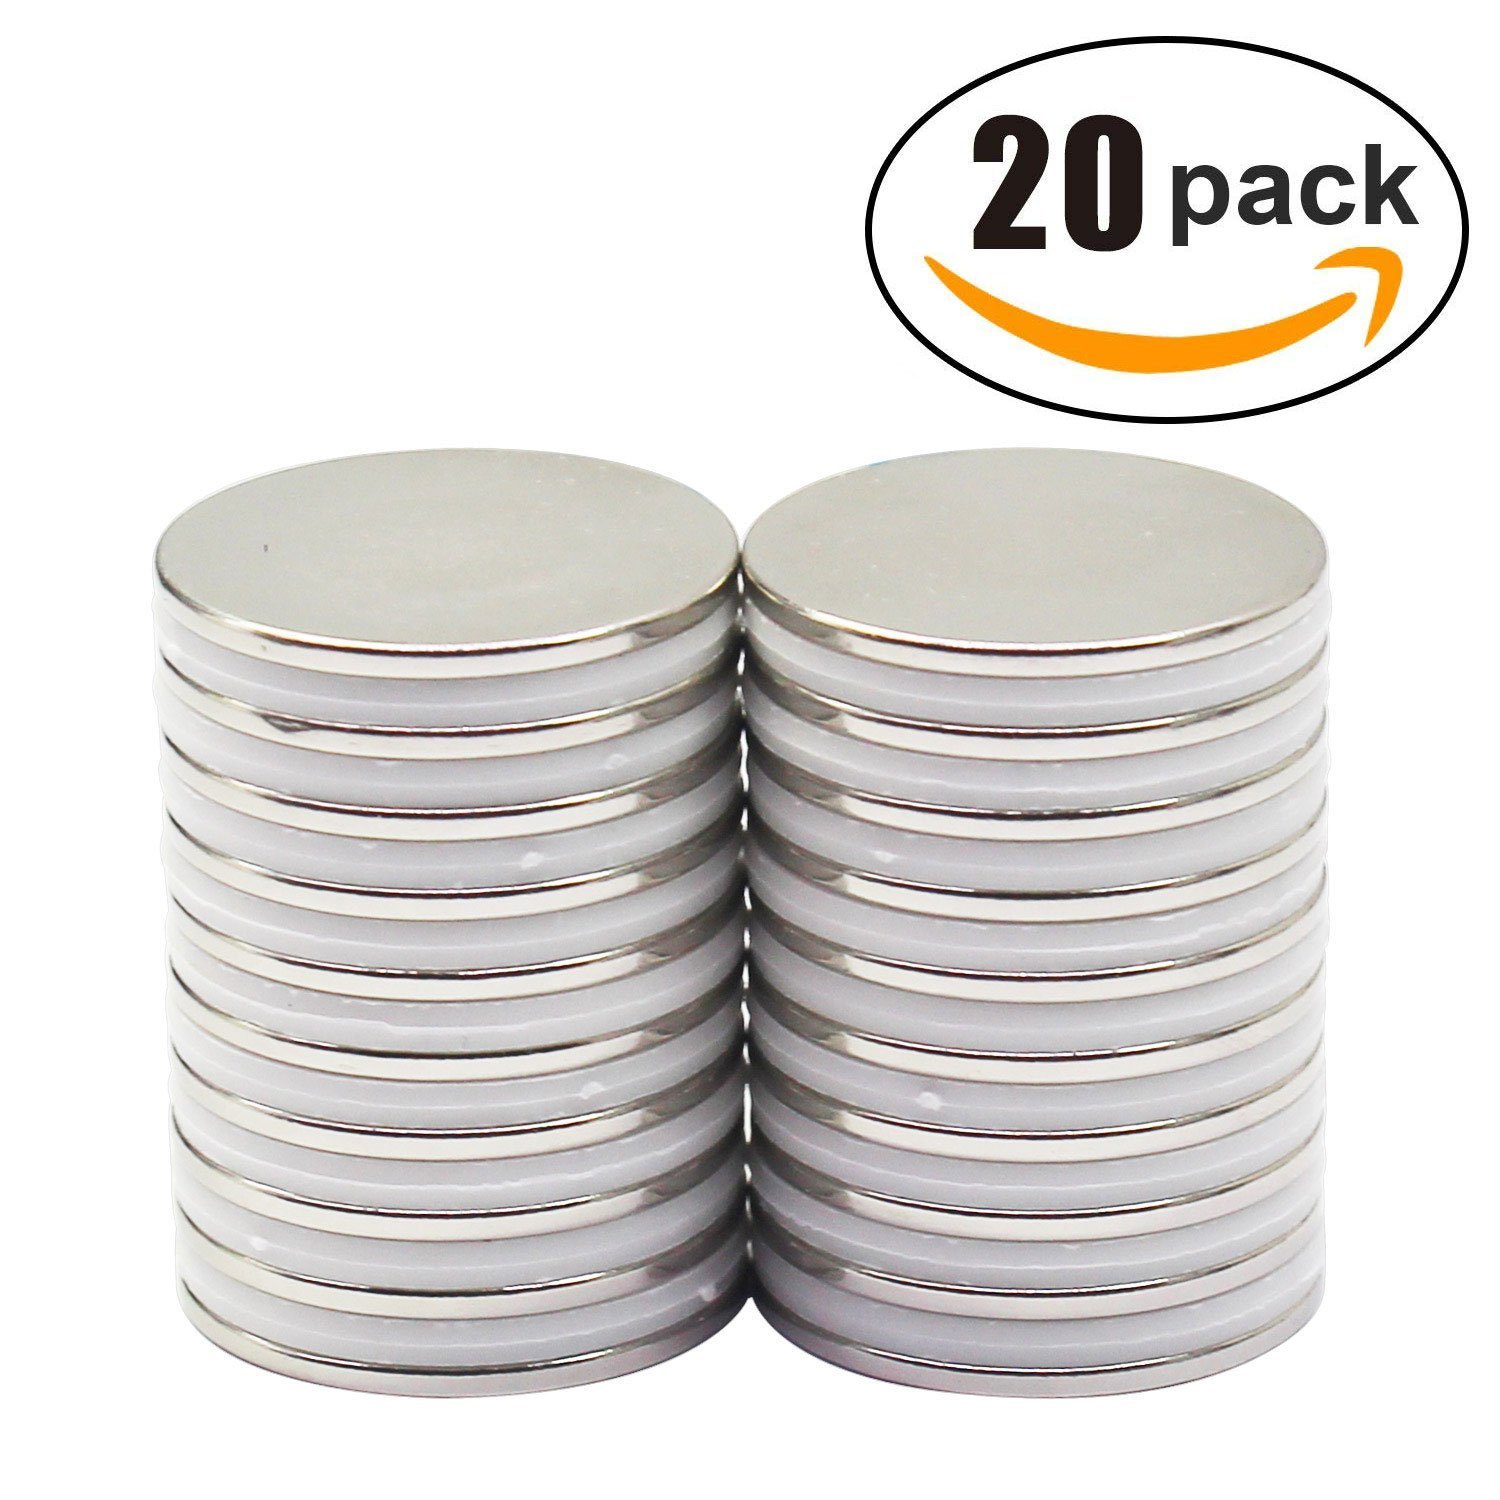 Strong Neodymium Disc Magnets 20 Pack For Kitchen, Office, Garage, Home, Workplace, 1.26''D x 0.08''H